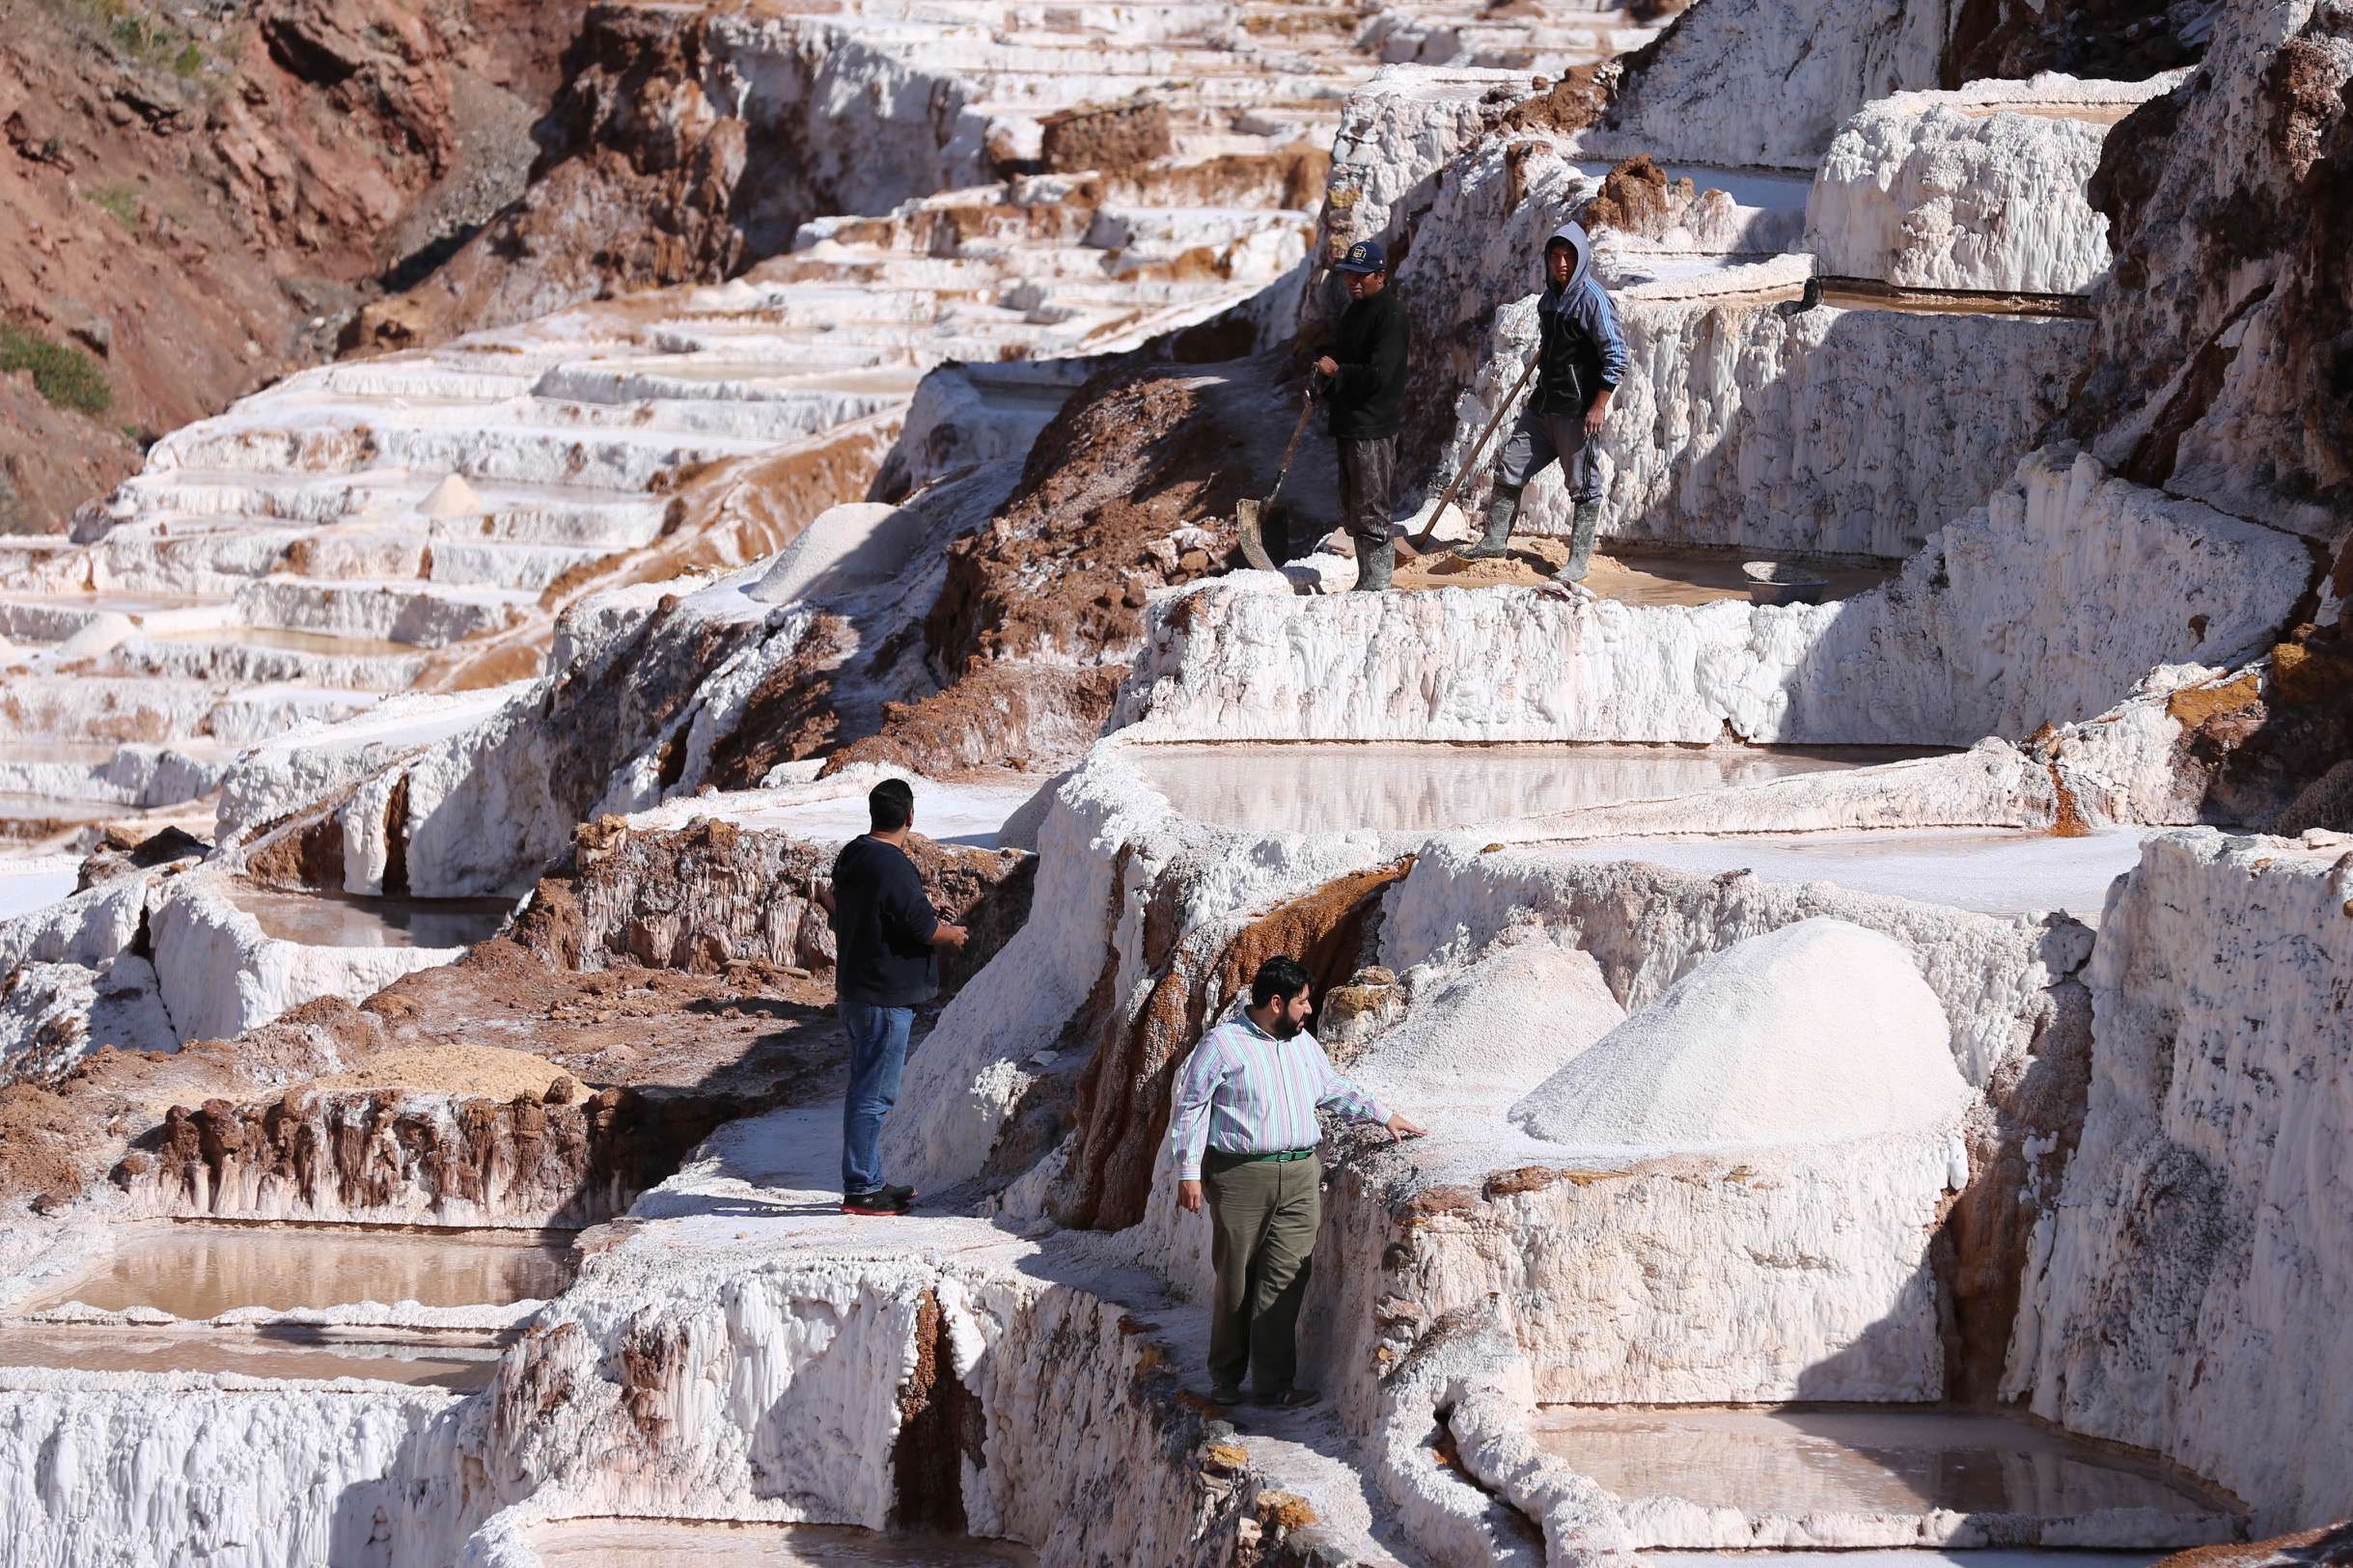 For visitors, it's just a stroll through along the salt ponds, but for the people of Maras, Peru, it's a centuries-old livelihood.